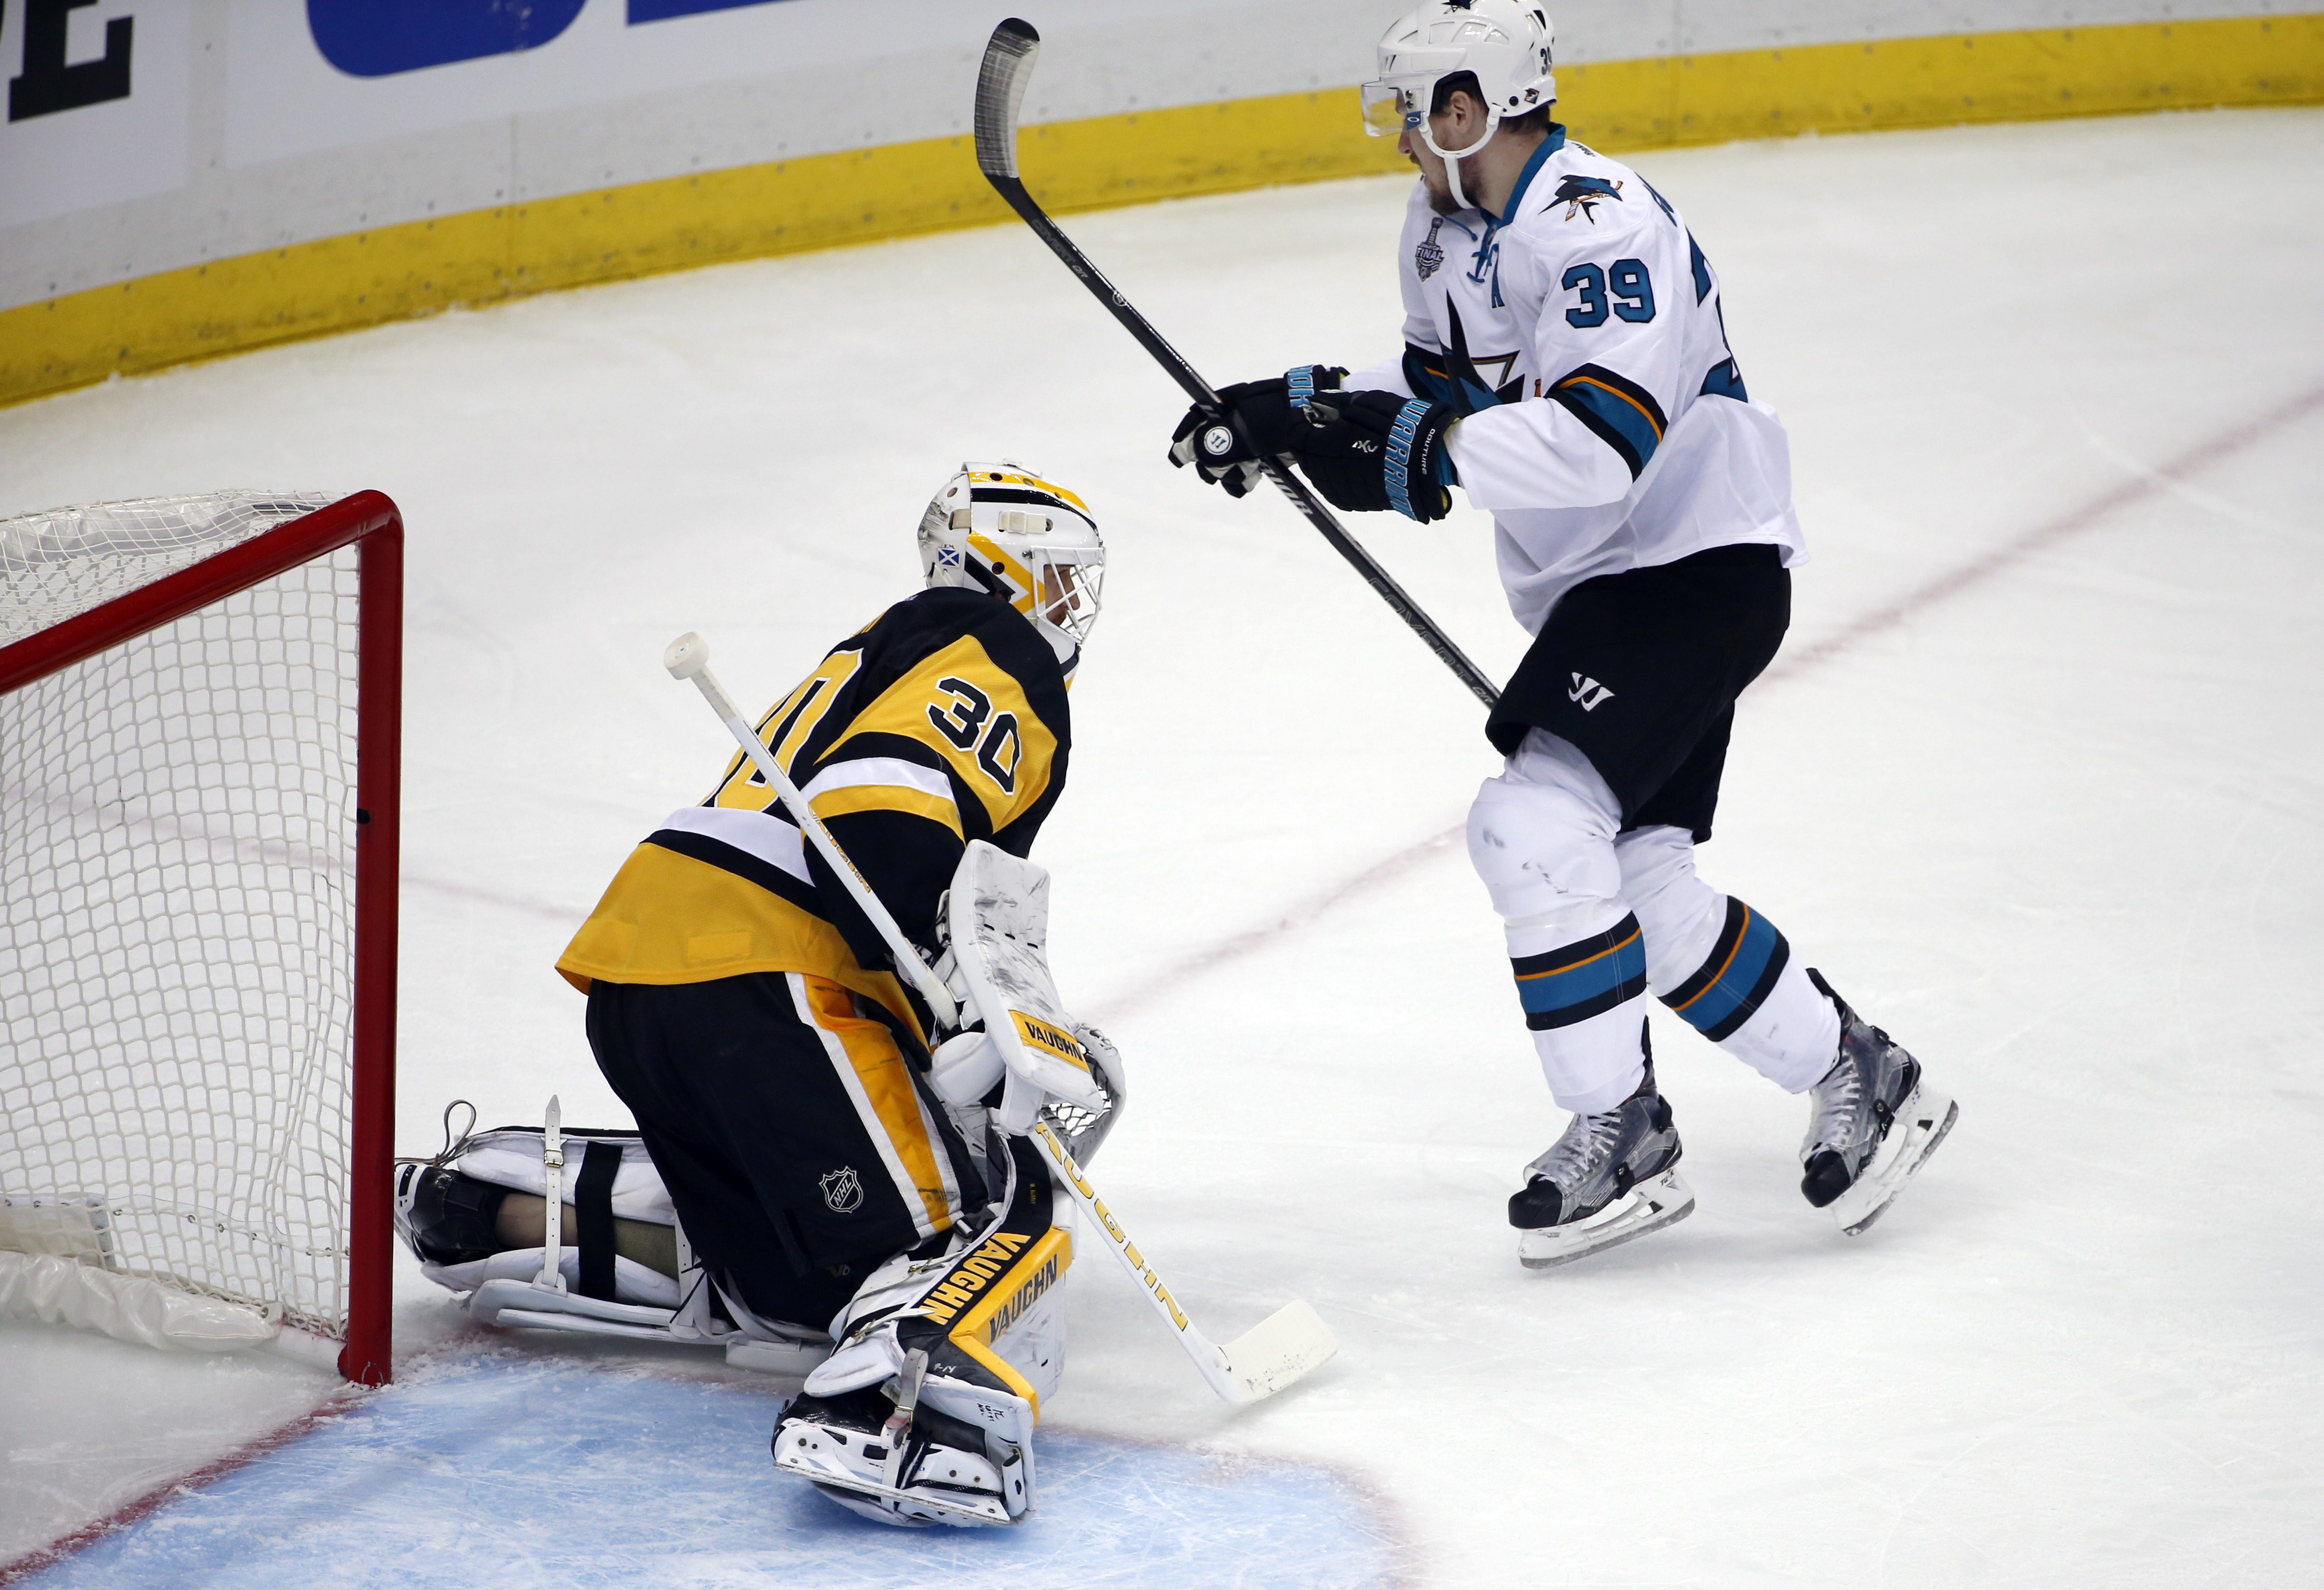 San Jose Sharks' Logan Couture (39) celebrates his goal in front of Pittsburgh Penguins goalie Matt Murray (30) during the first period in Game 5 of the NHL hockey Stanley Cup Finals on Thursday, June 9, 2016, in Pittsburgh. (AP Photo/Gene J. Puskar)